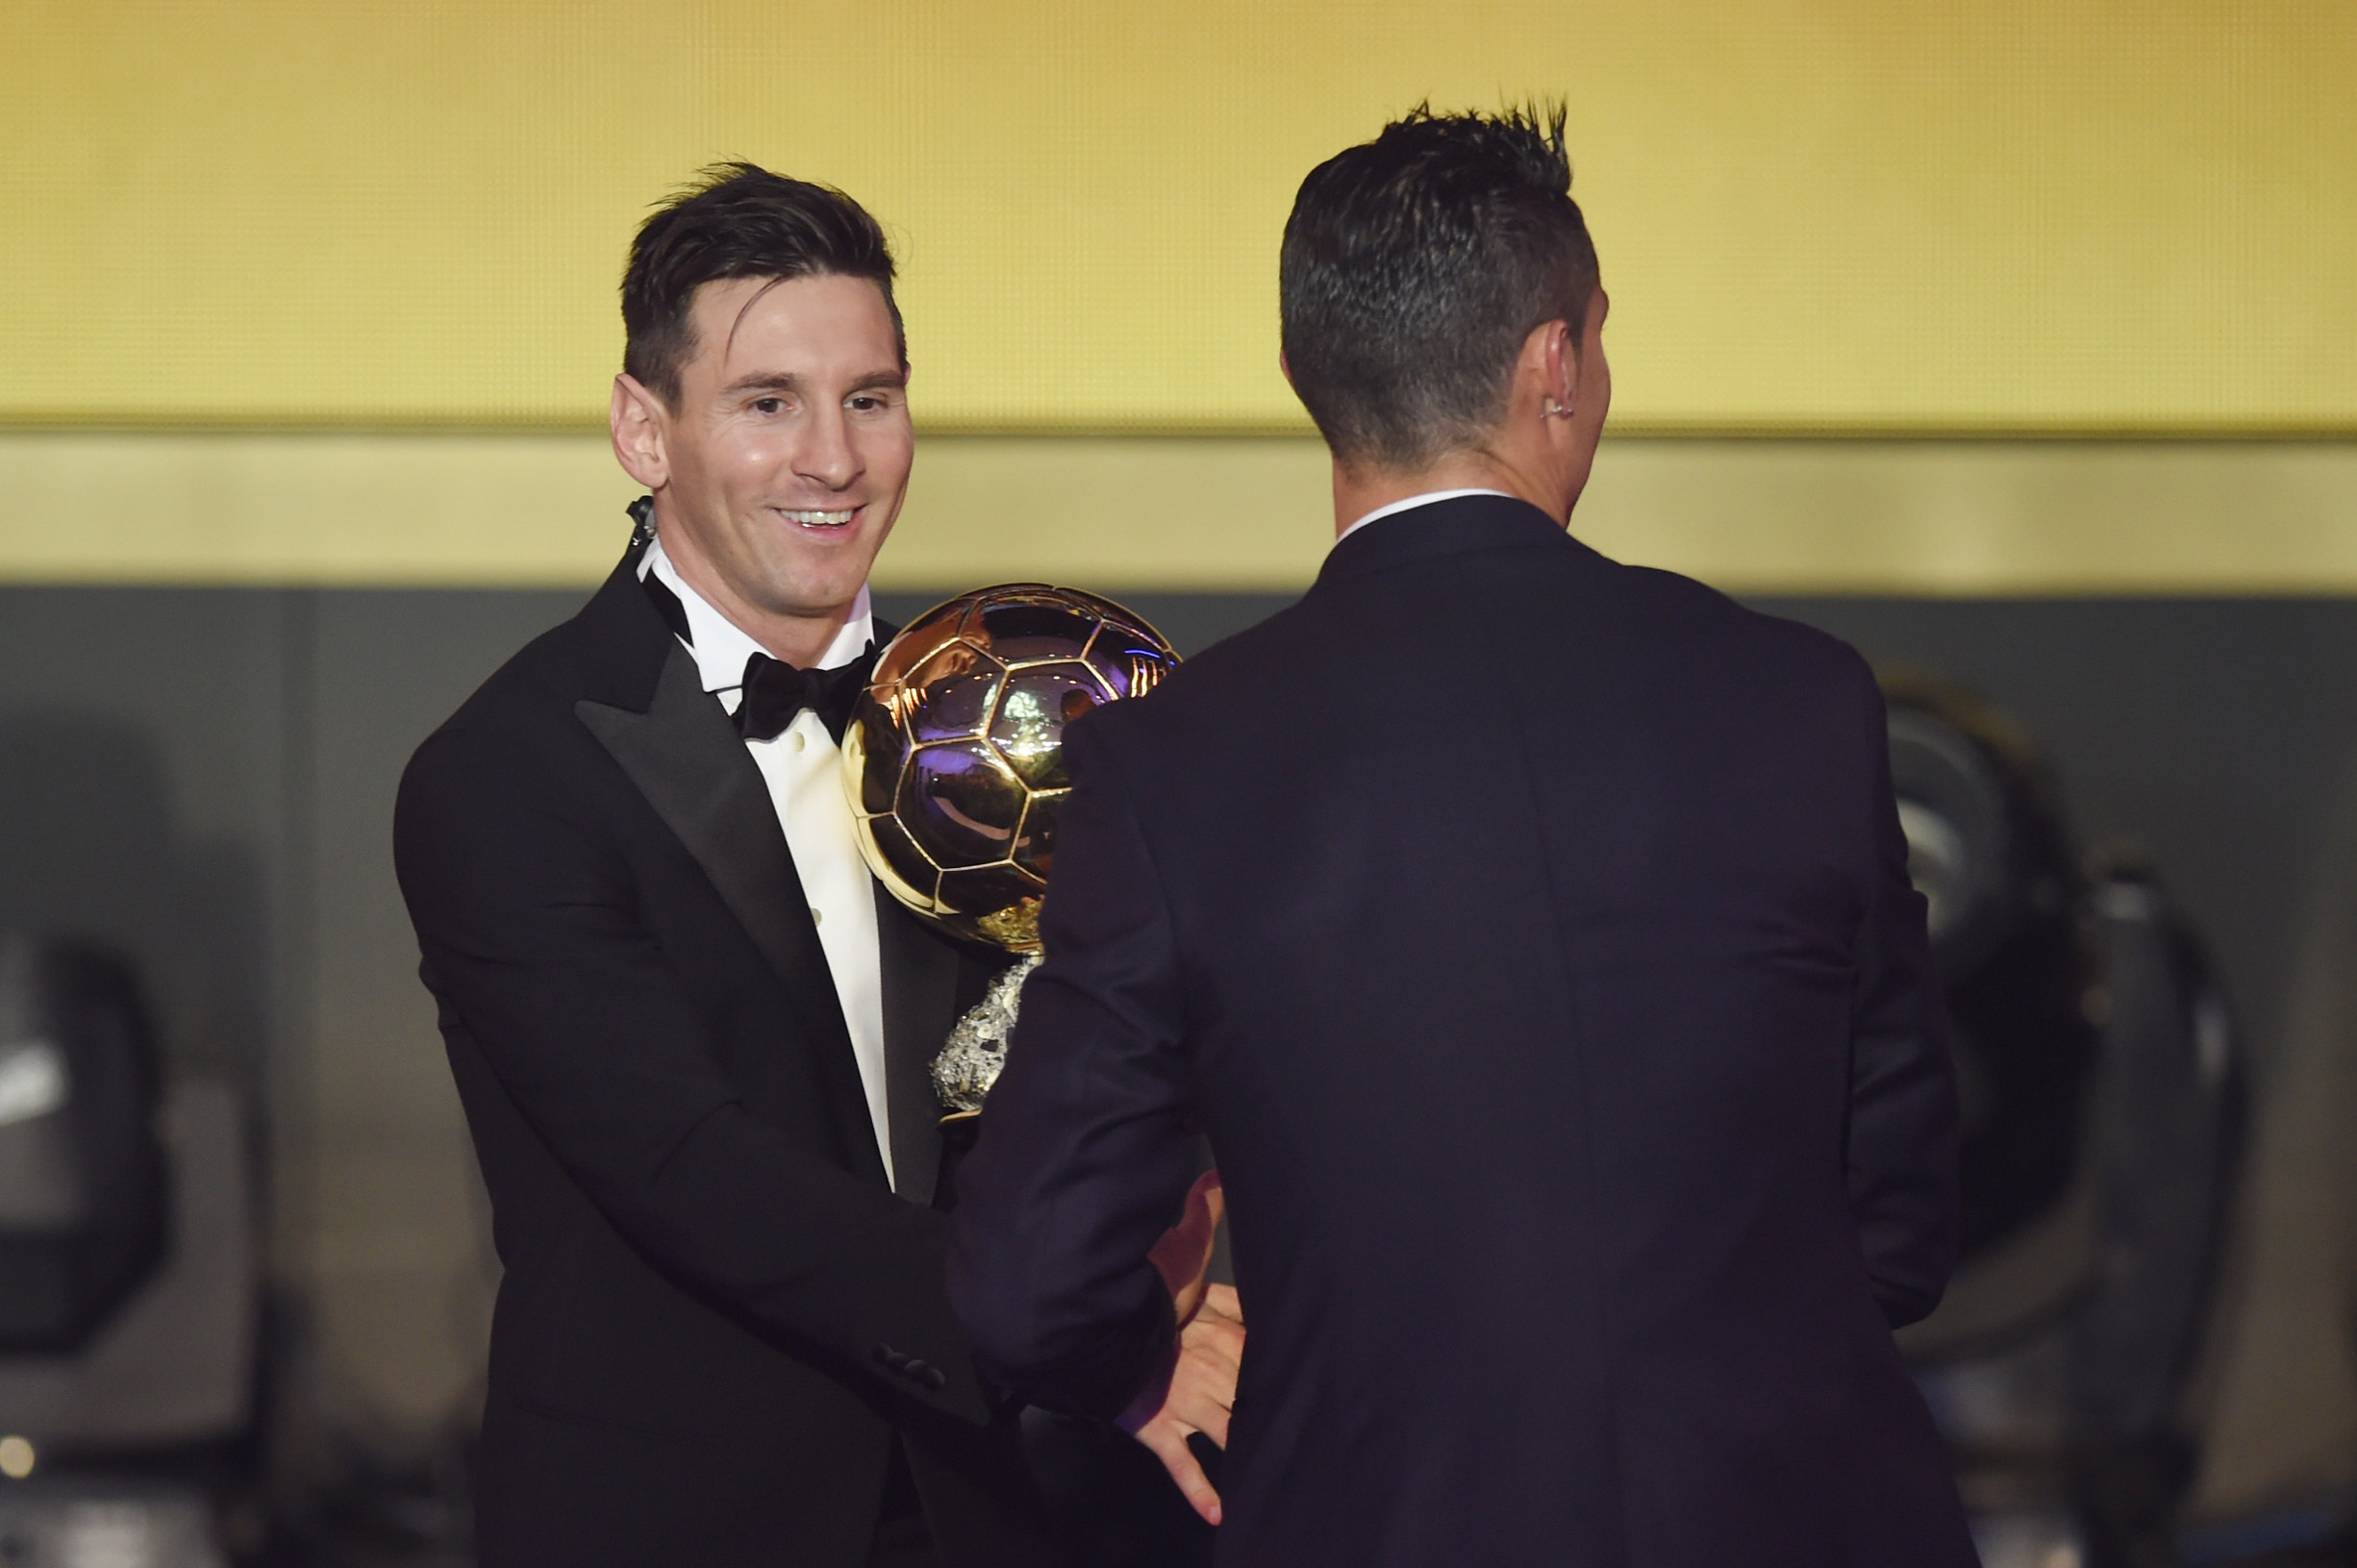 ZURICH, SWITZERLAND - JANUARY 11:  Lionel Messi of Argentina and FC Barcelona the winner of the Ballon d'or is congratulated byCristiano Ronaldo of Portugal and Real Madrid during the FIFA Ballon d'Or Gala 2015 at the Kongresshaus on January 11, 2016 in Zurich, Switzerland.  (Photo by Matthias Hangst/Getty Images)